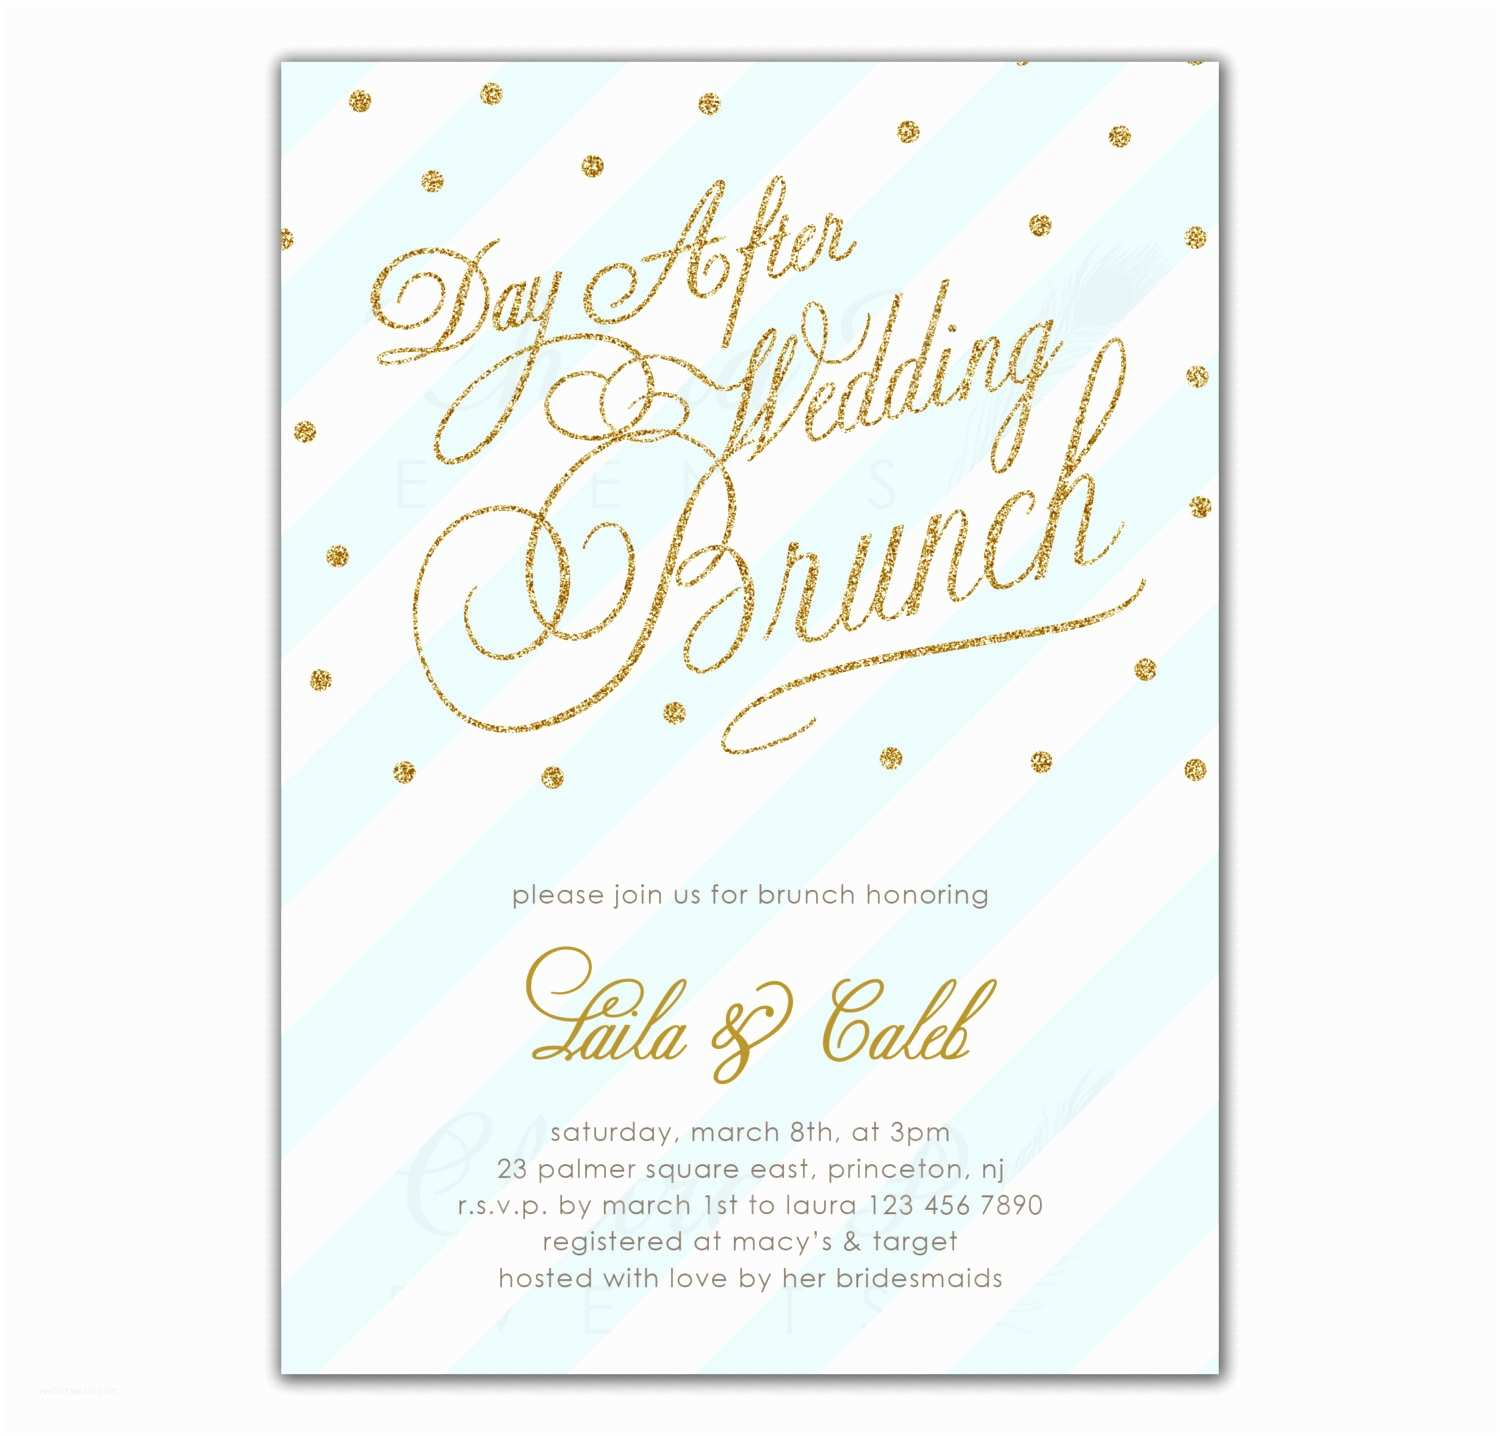 Post Wedding Breakfast Invitation Wording Post Wedding Brunch Invitation Printed or Printable by Chitrap